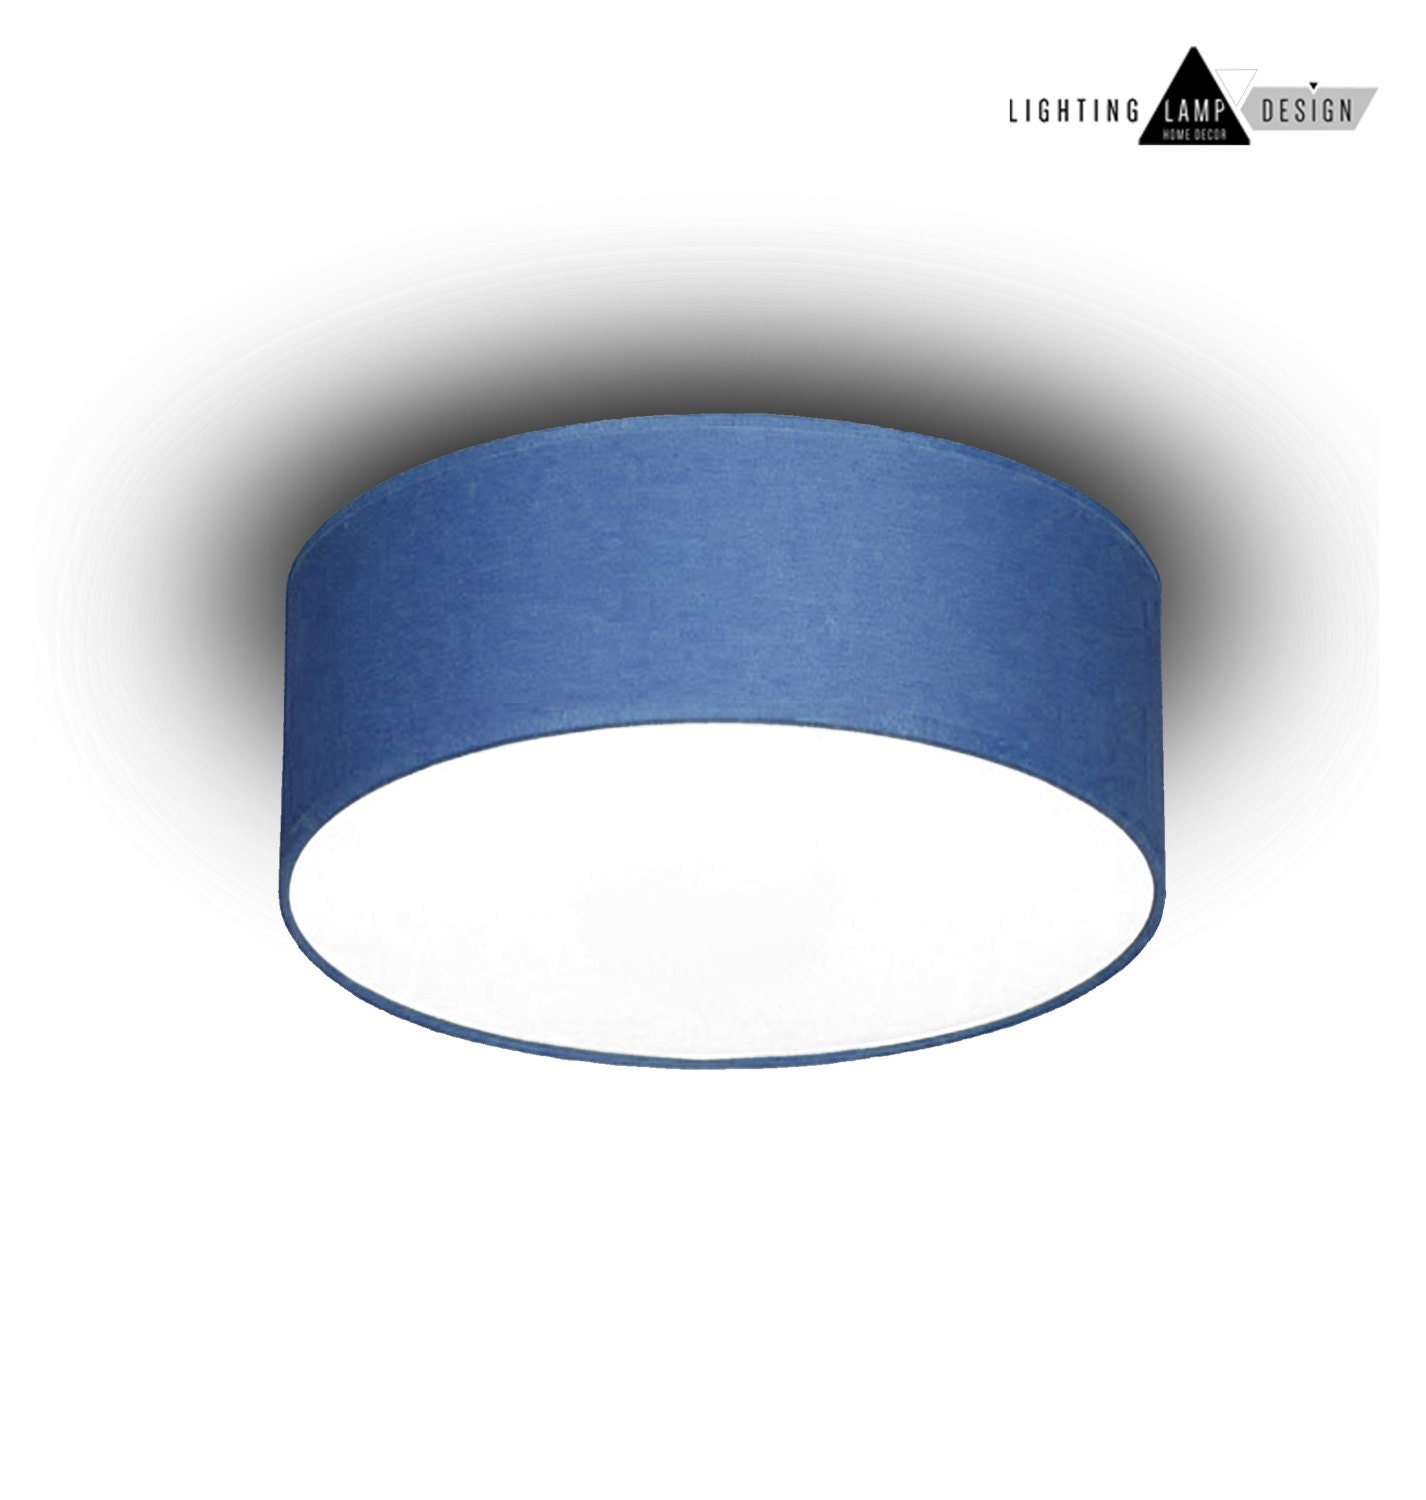 Navy Blue Ceiling Light Shade